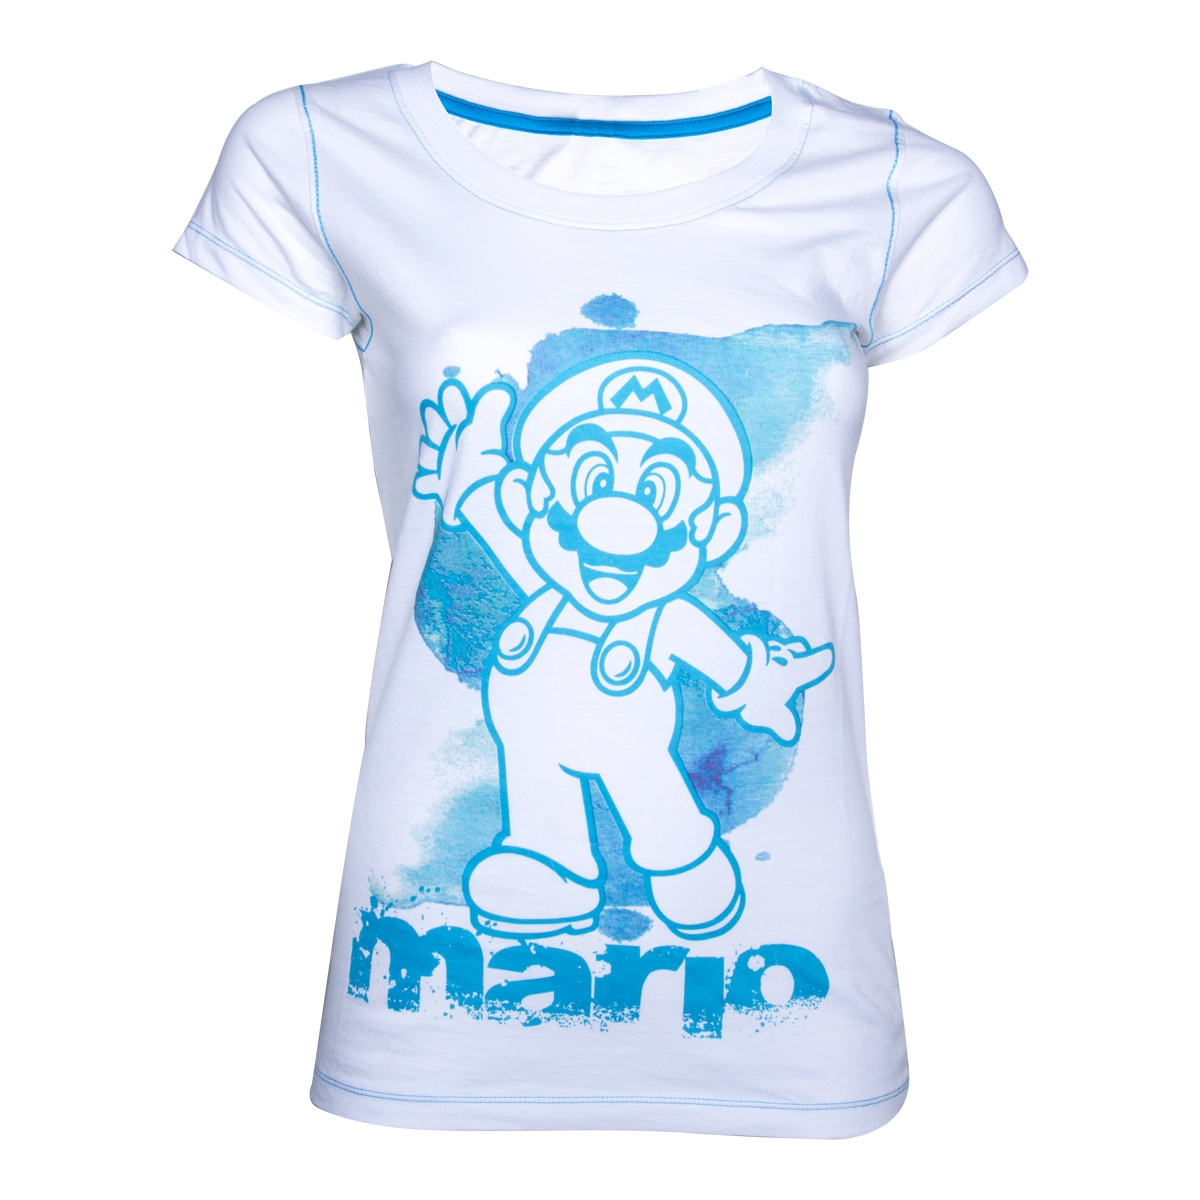 Mario Girls T-Shirt